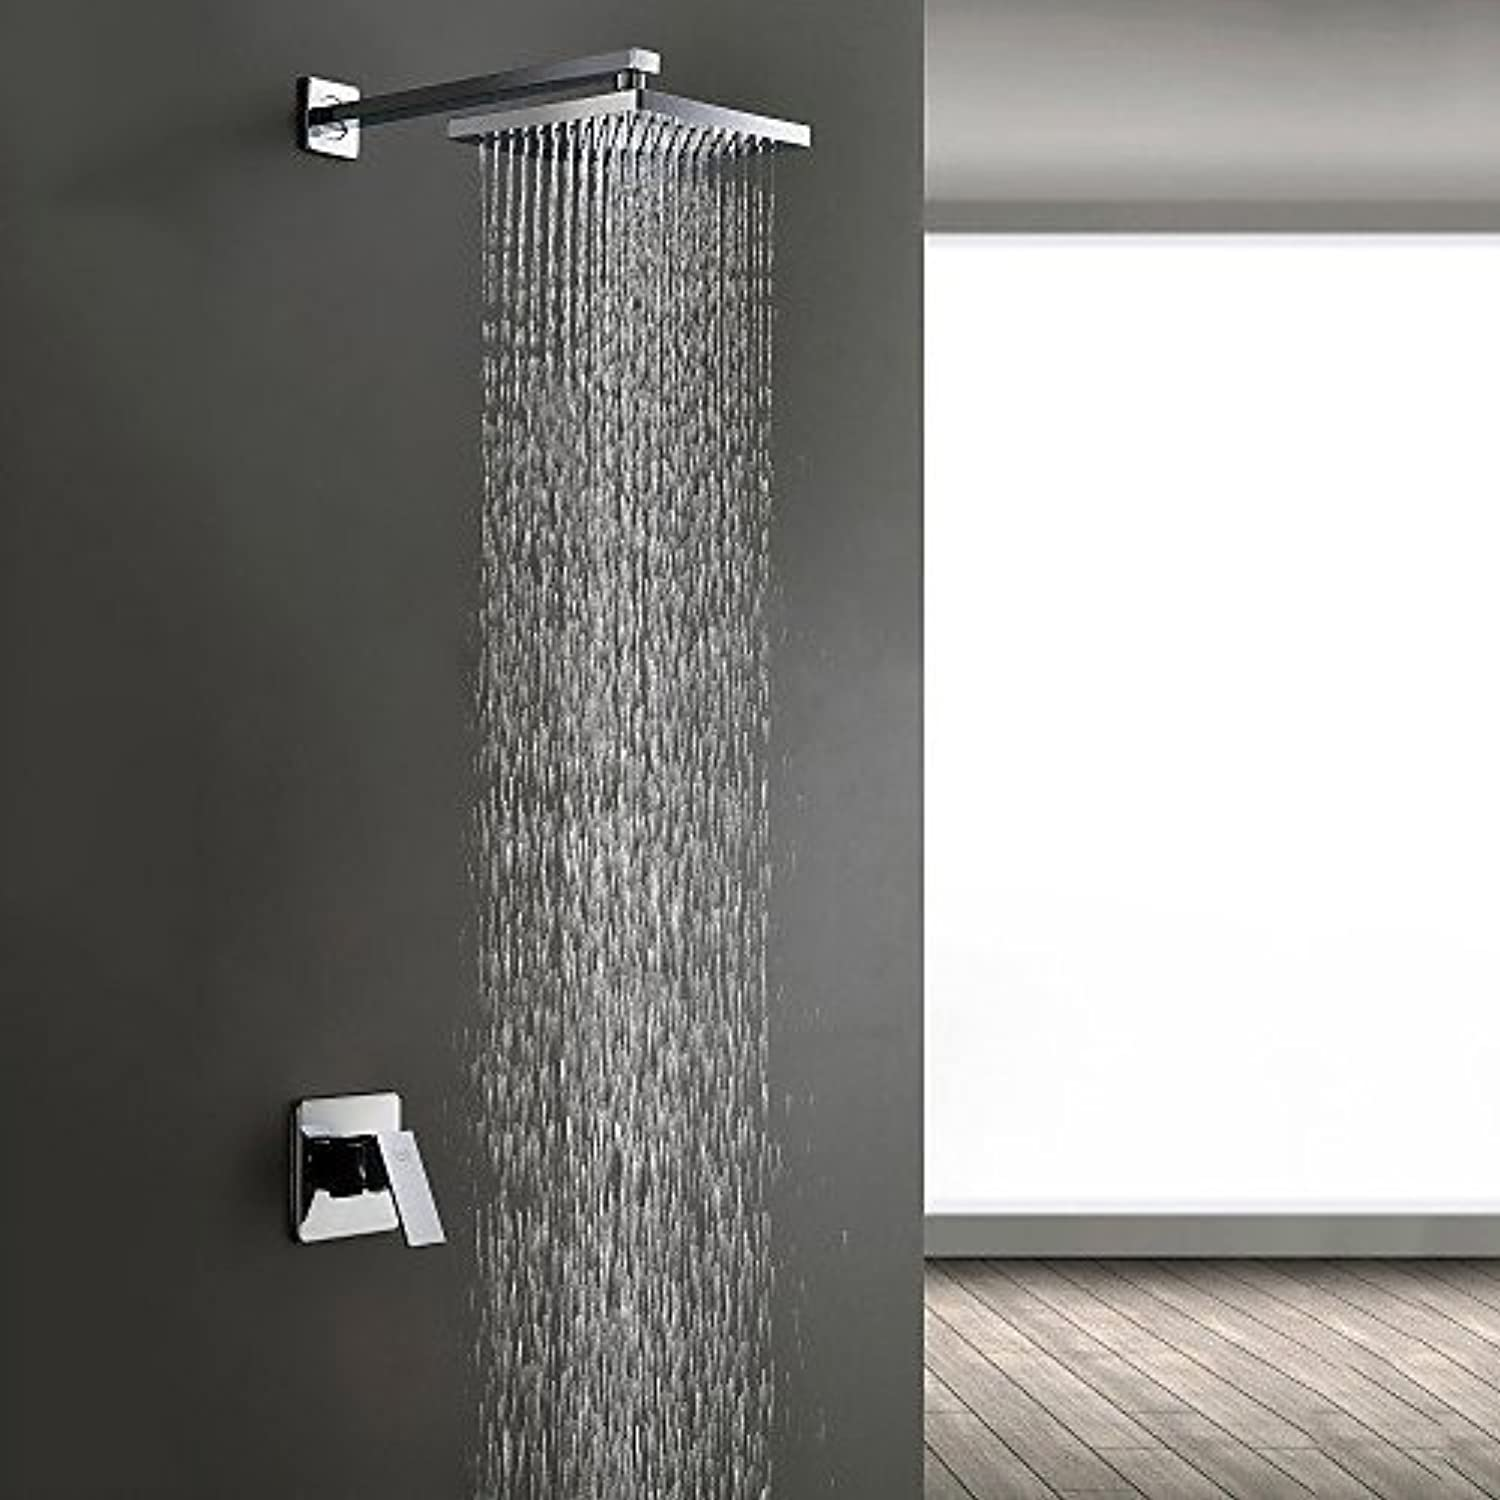 C.N. CN Shower Set into the Wall Shower Chrome Single Handle Shower Faucet